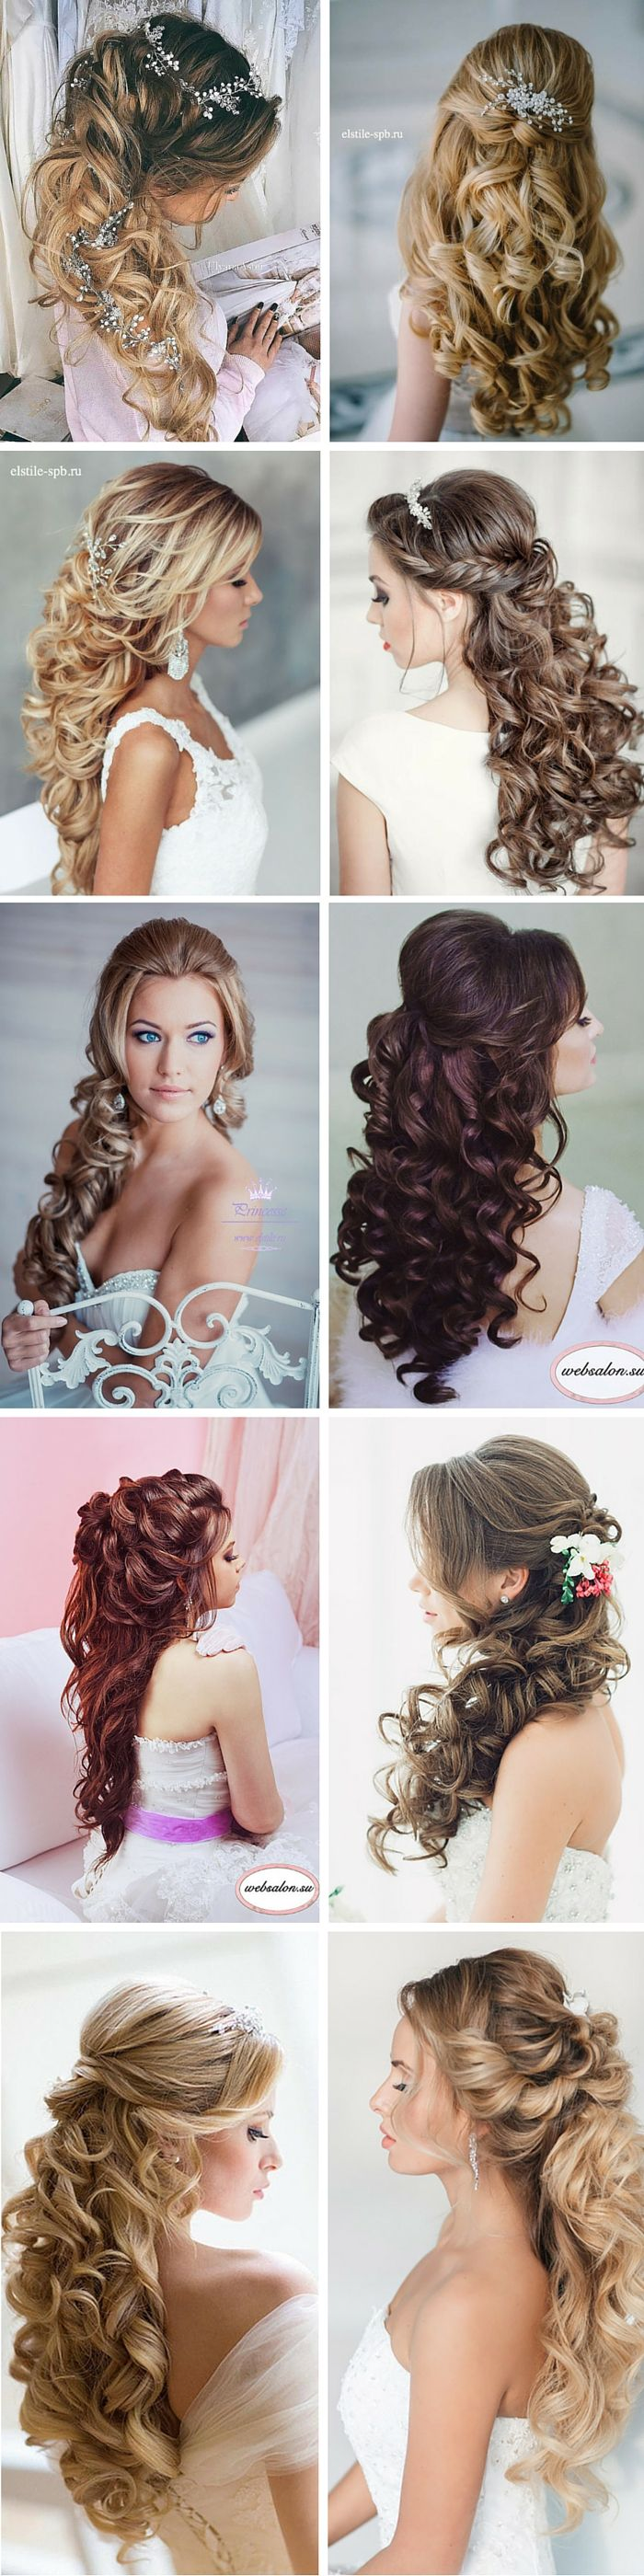 24 Stunning Half Up Half Down Wedding Hairstyles. See more: http://www.weddingforward.com/half-up-half-down-wedding-hairstyles-ideas/ #wedding #hairstyles